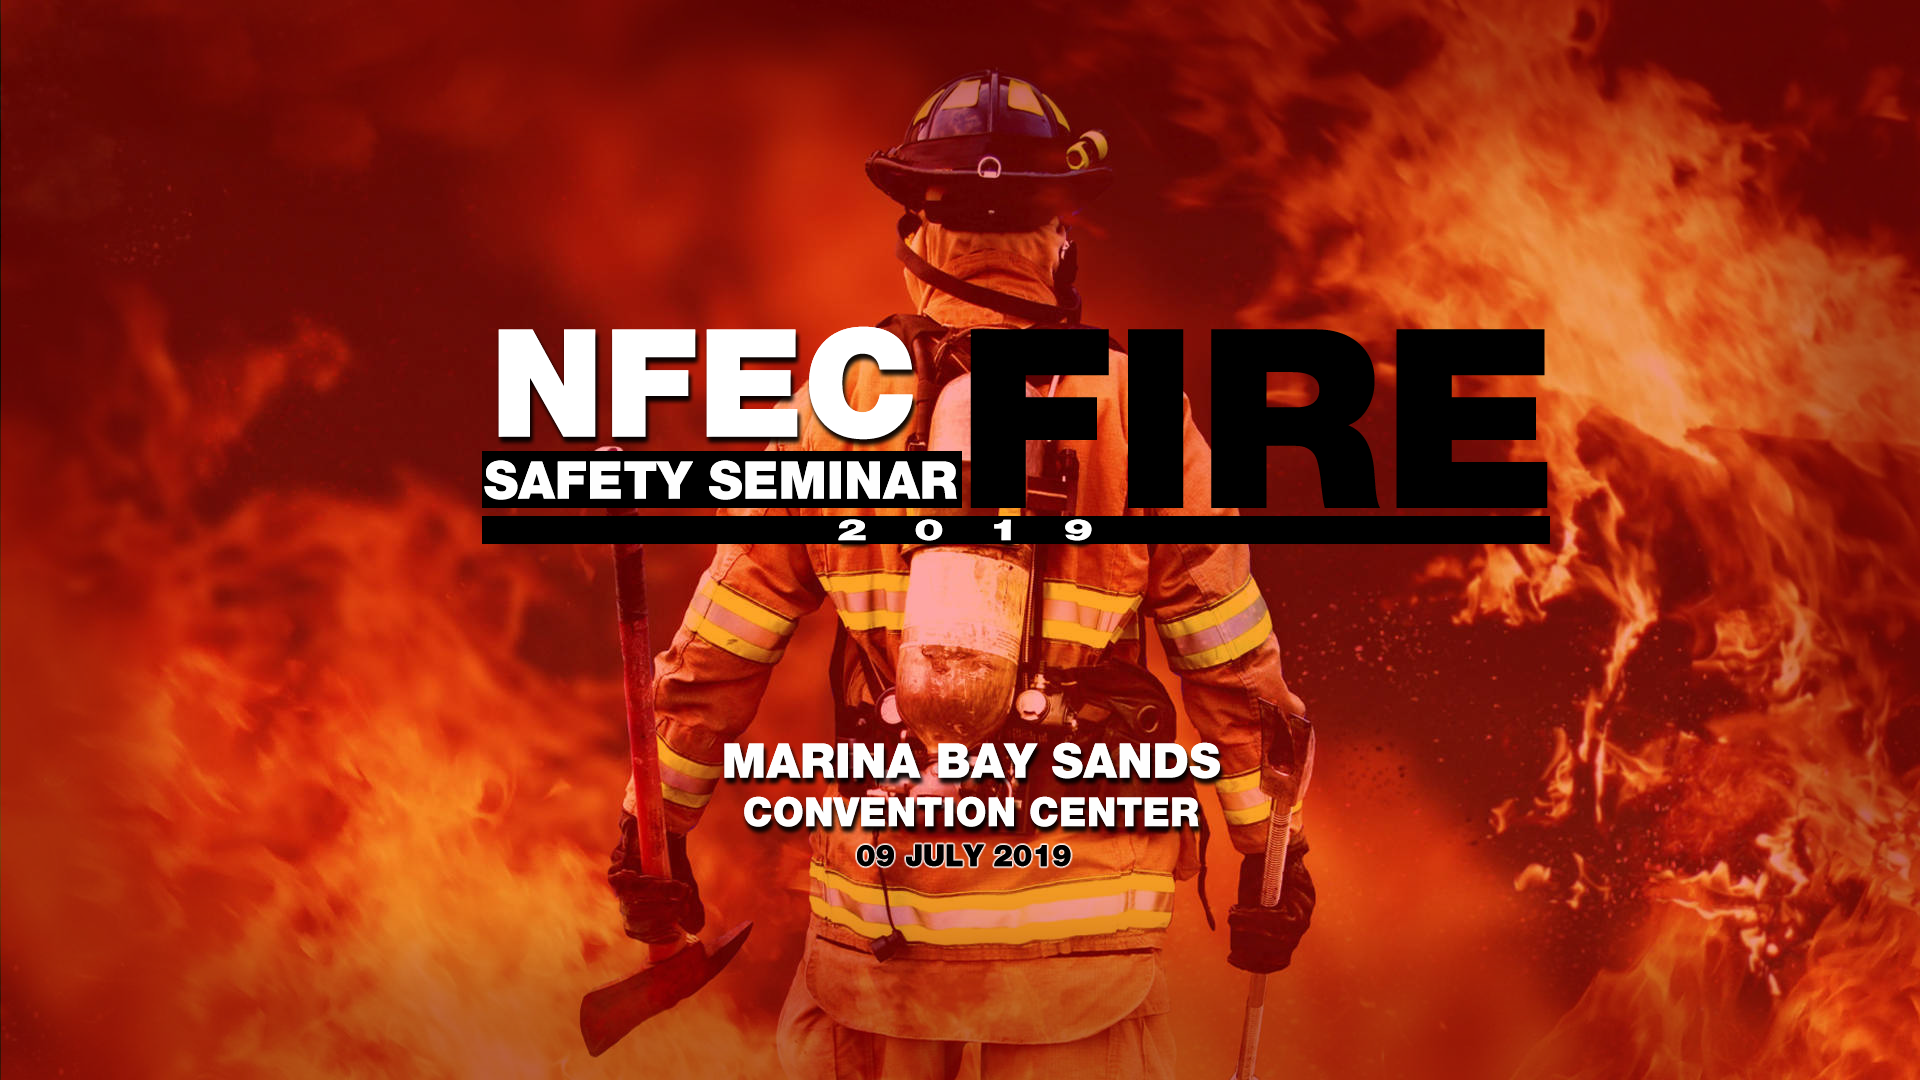 Join us @NFEC Fire Safety Seminar 2019